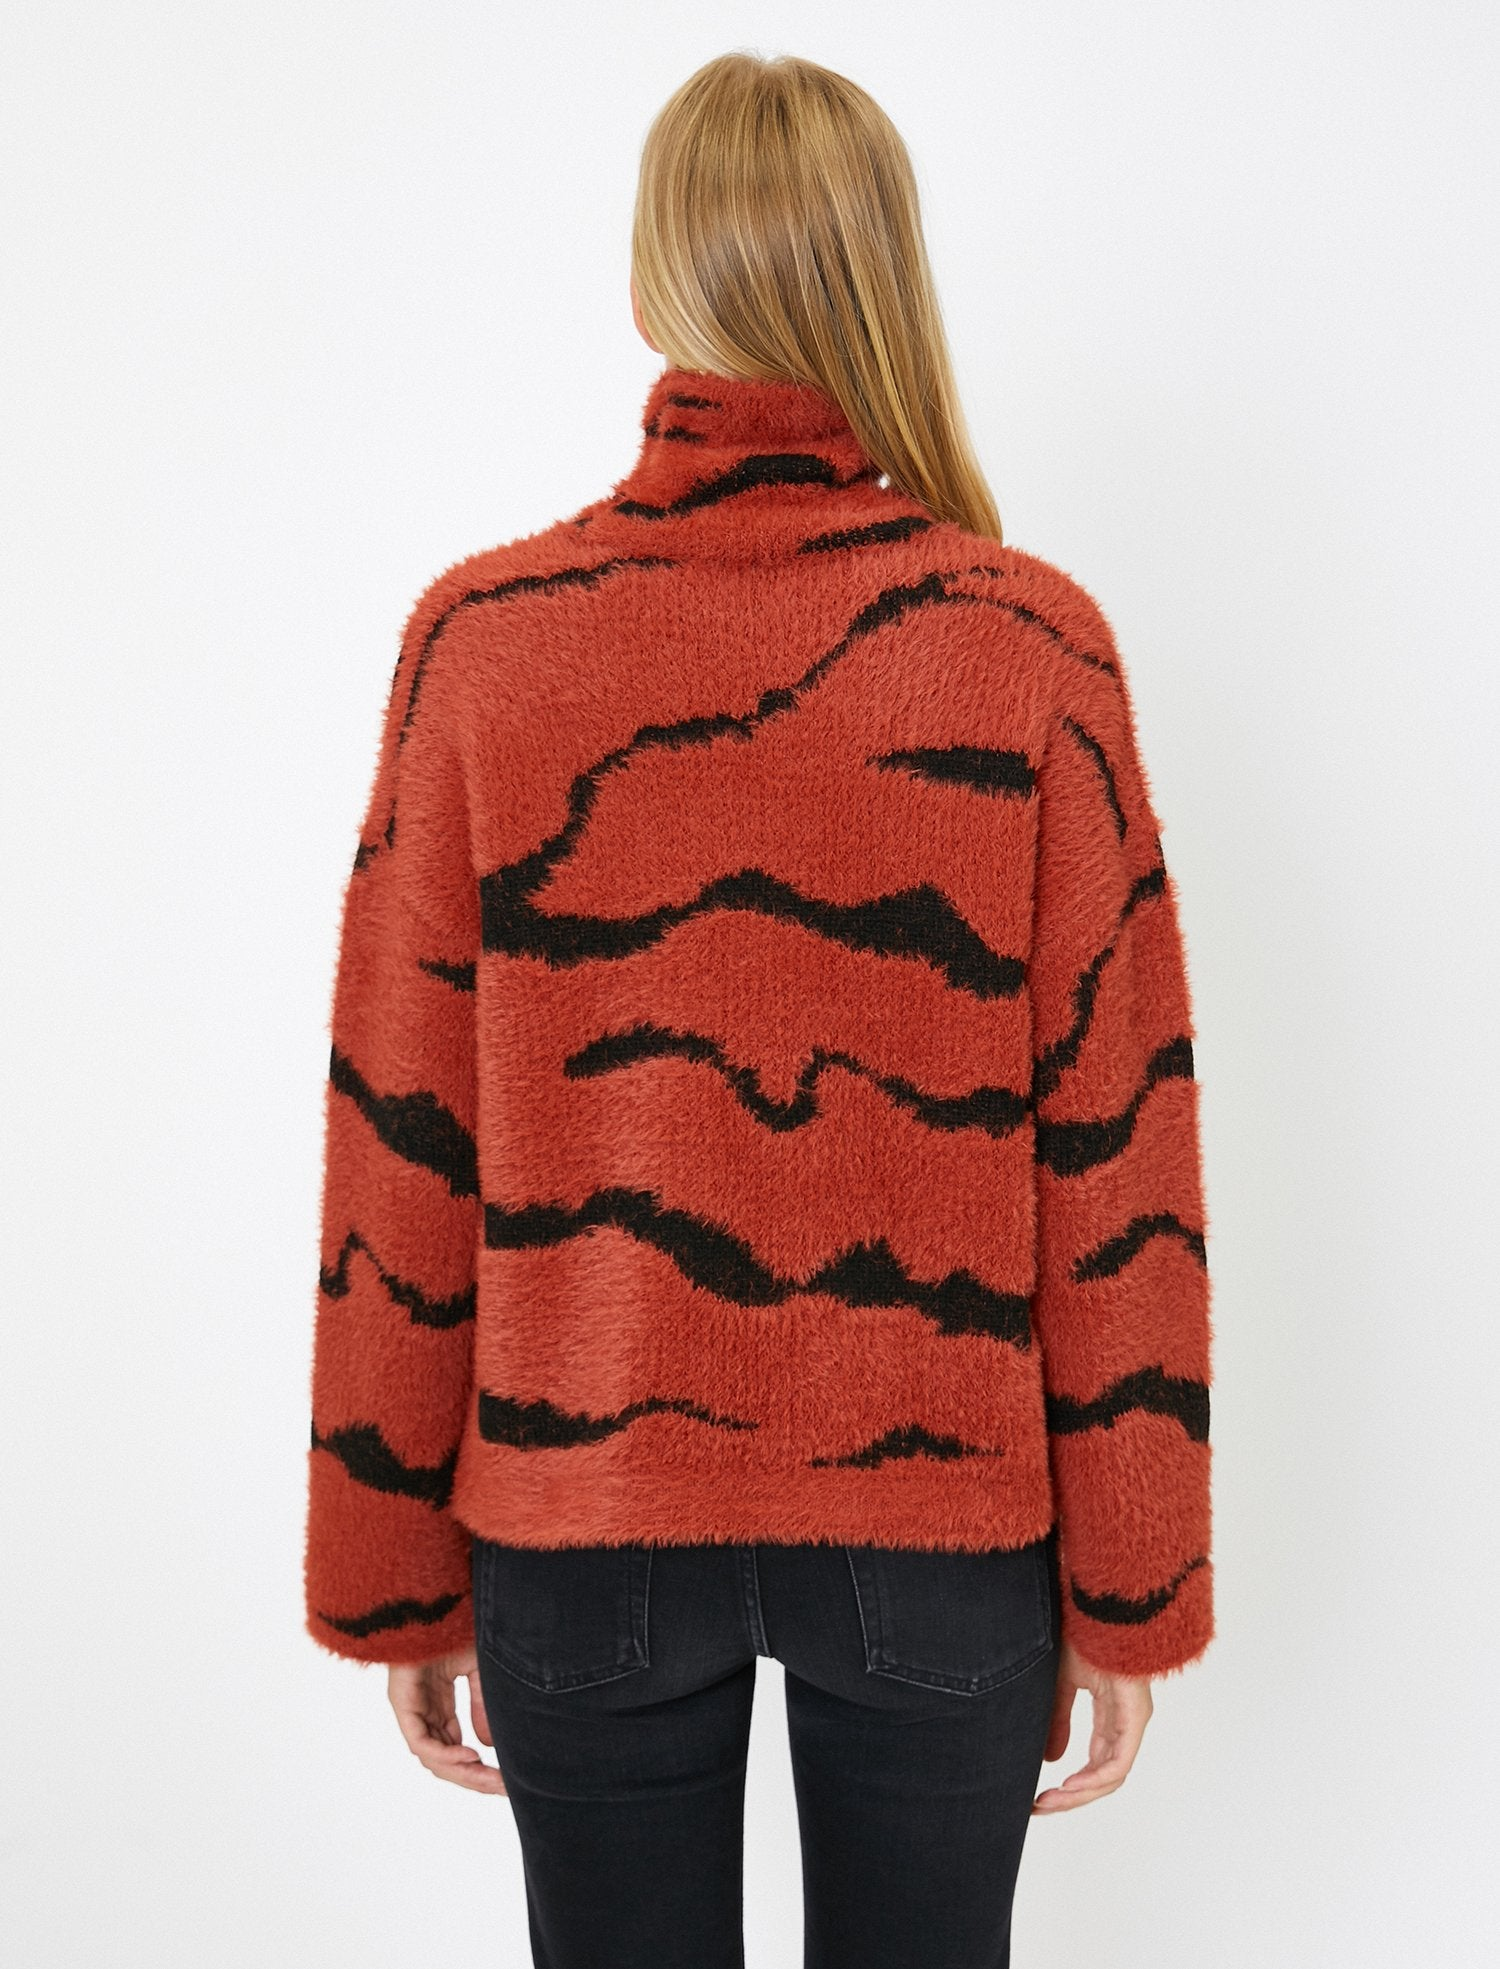 Patterned Turtle Neck Sweater in Red Clay